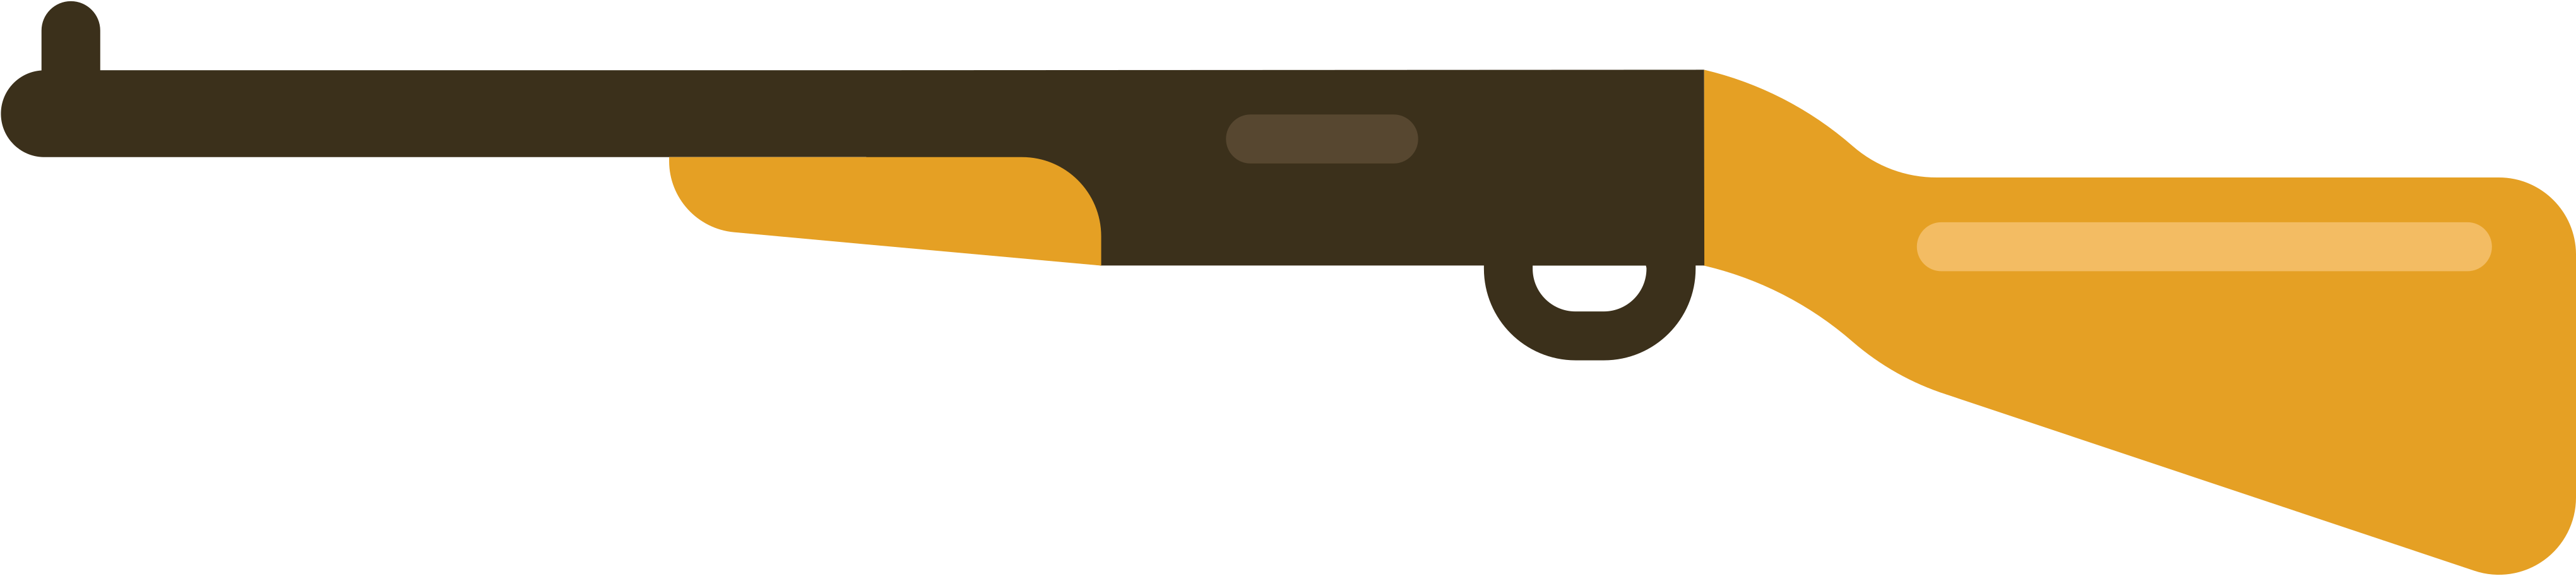 style gun shotgun Vector images in PNG and SVG   Icons8 Illustrations